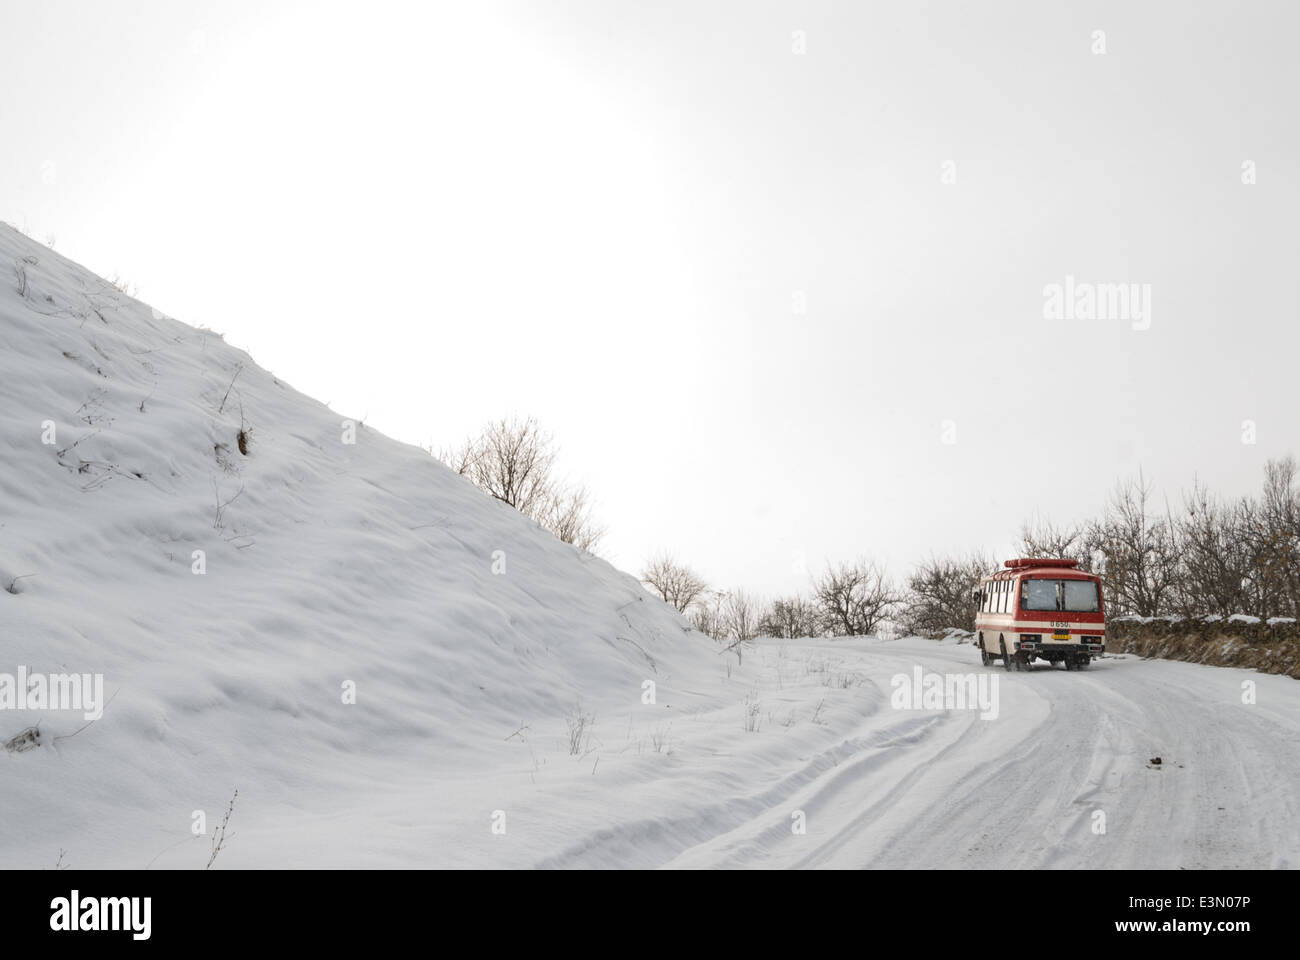 Small bus driving on a slippery winter road, Armenia - Stock Image